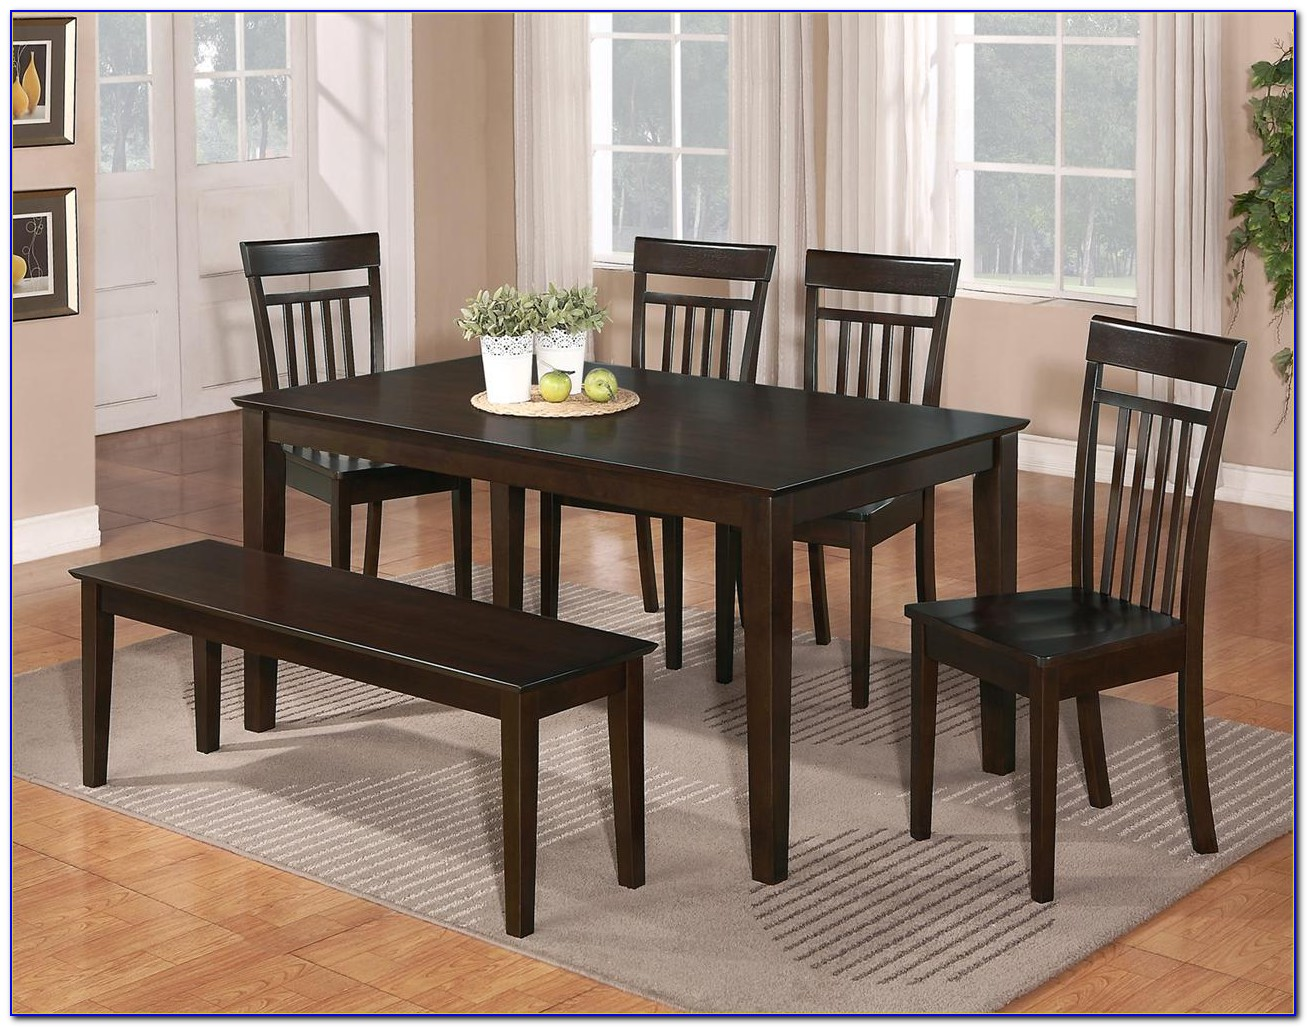 Dining Room Bench Sets